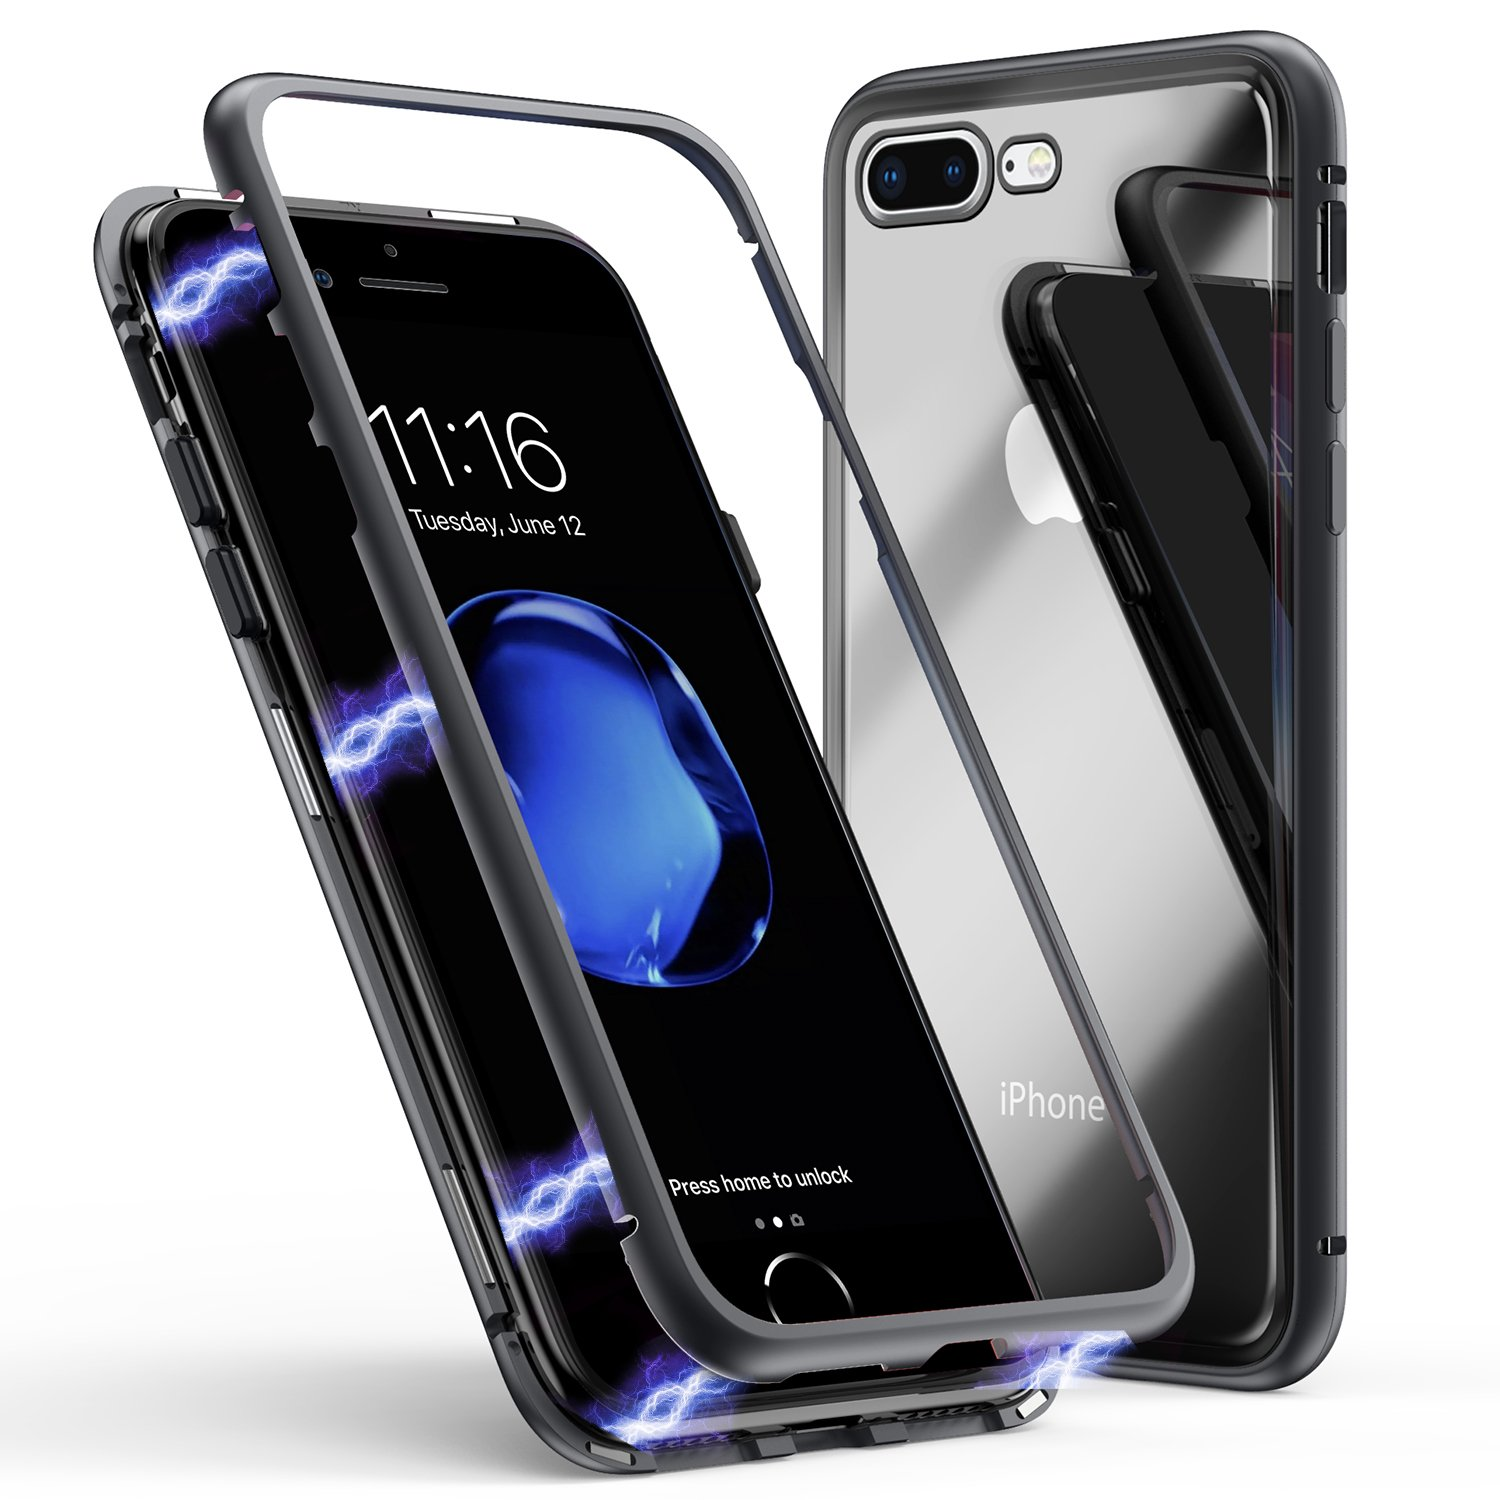 iPhone 6 Case,iPhone 6s Case, ZHIKE Magnetic Adsorption Case Metal Frame Tempered Glass Back with Built-in Magnet Cover for Apple iPhone 6/iPhone 6s (Clear White)